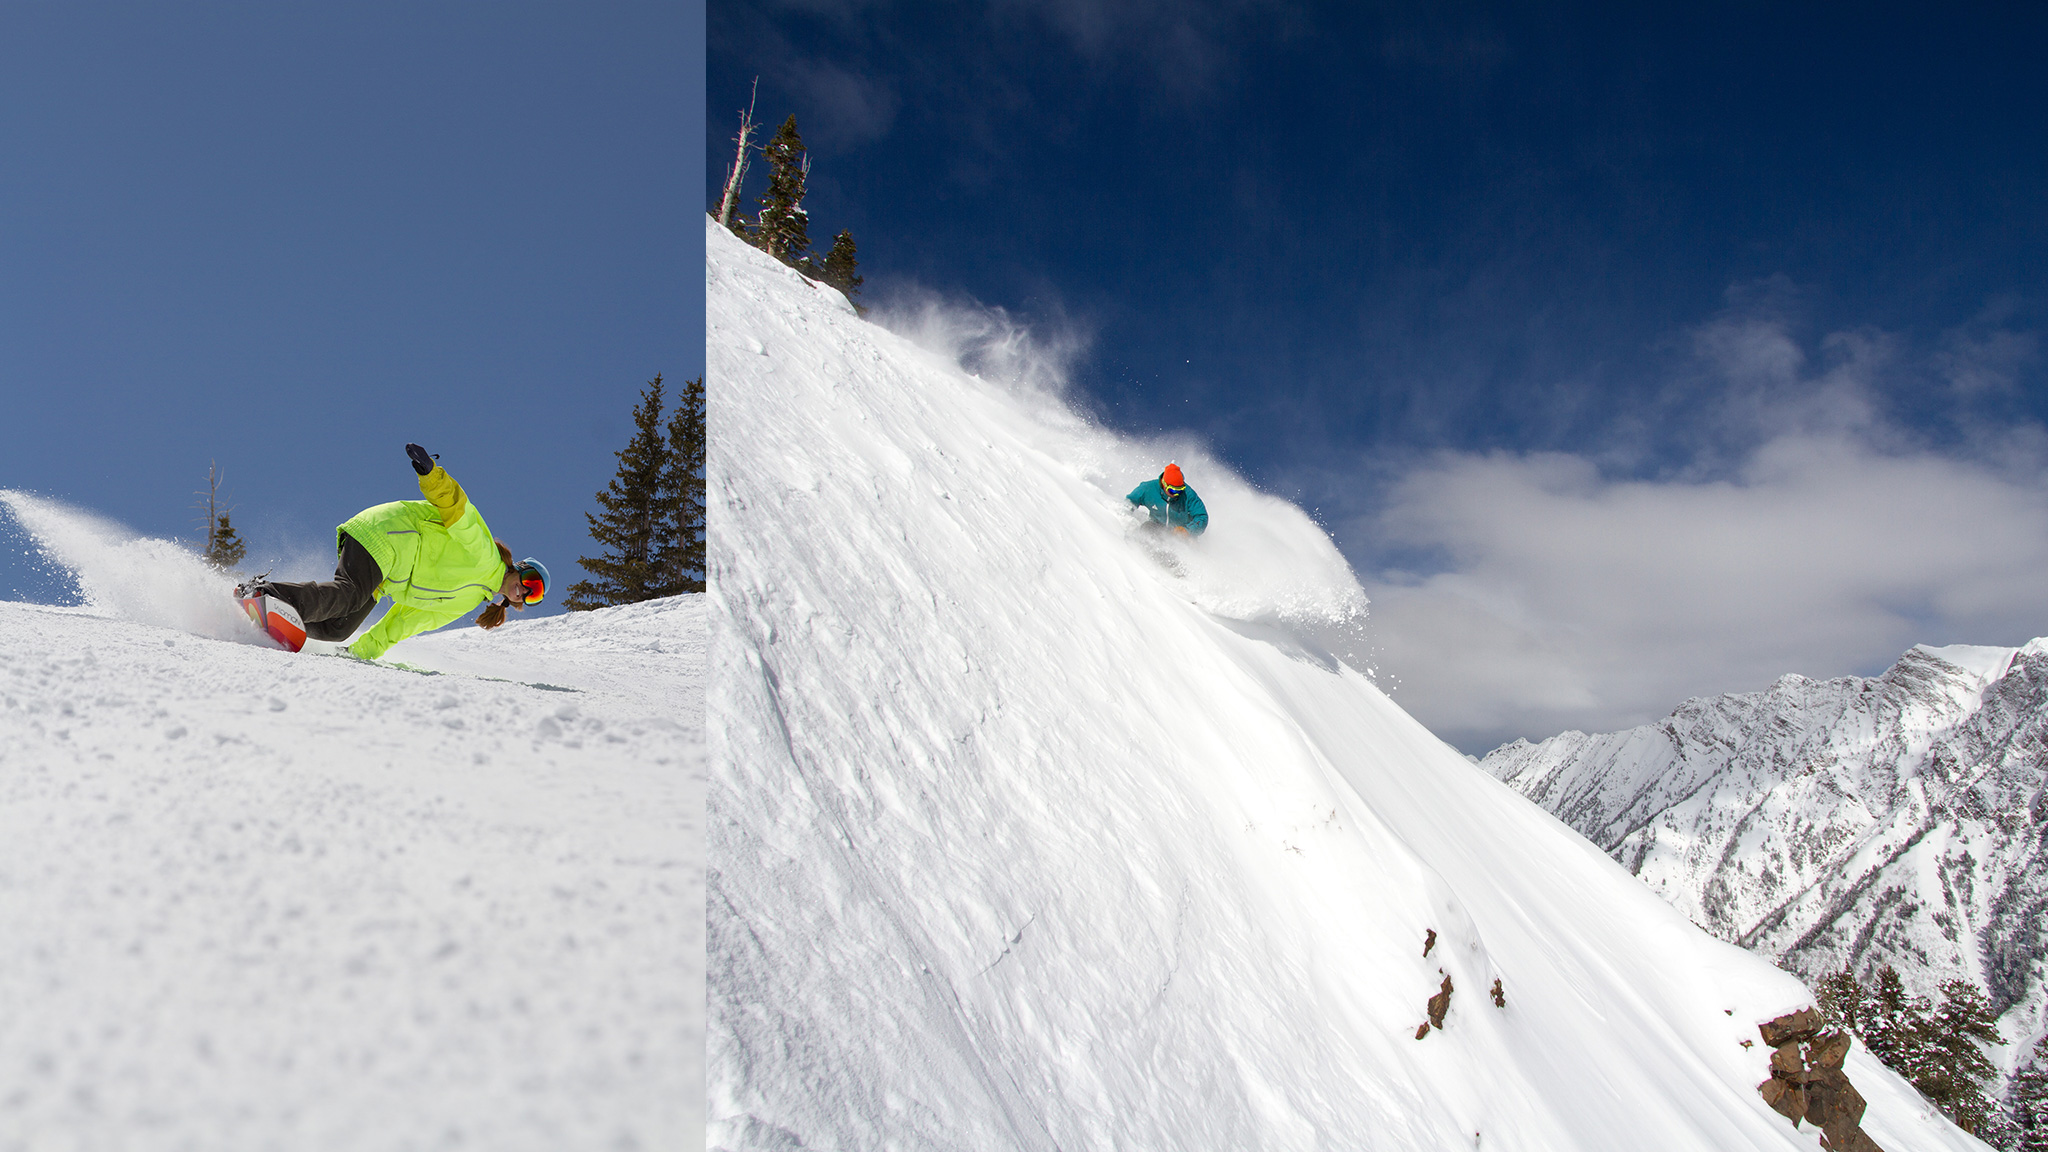 On April 29, Snowbird will be the only resort in Utah left to ride at this season. The resort will run seven days a week until May 12 and then be open Friday to Sunday until Memorial Day. Bring in a 2012-13 season pass from anywhere and ski for 42.